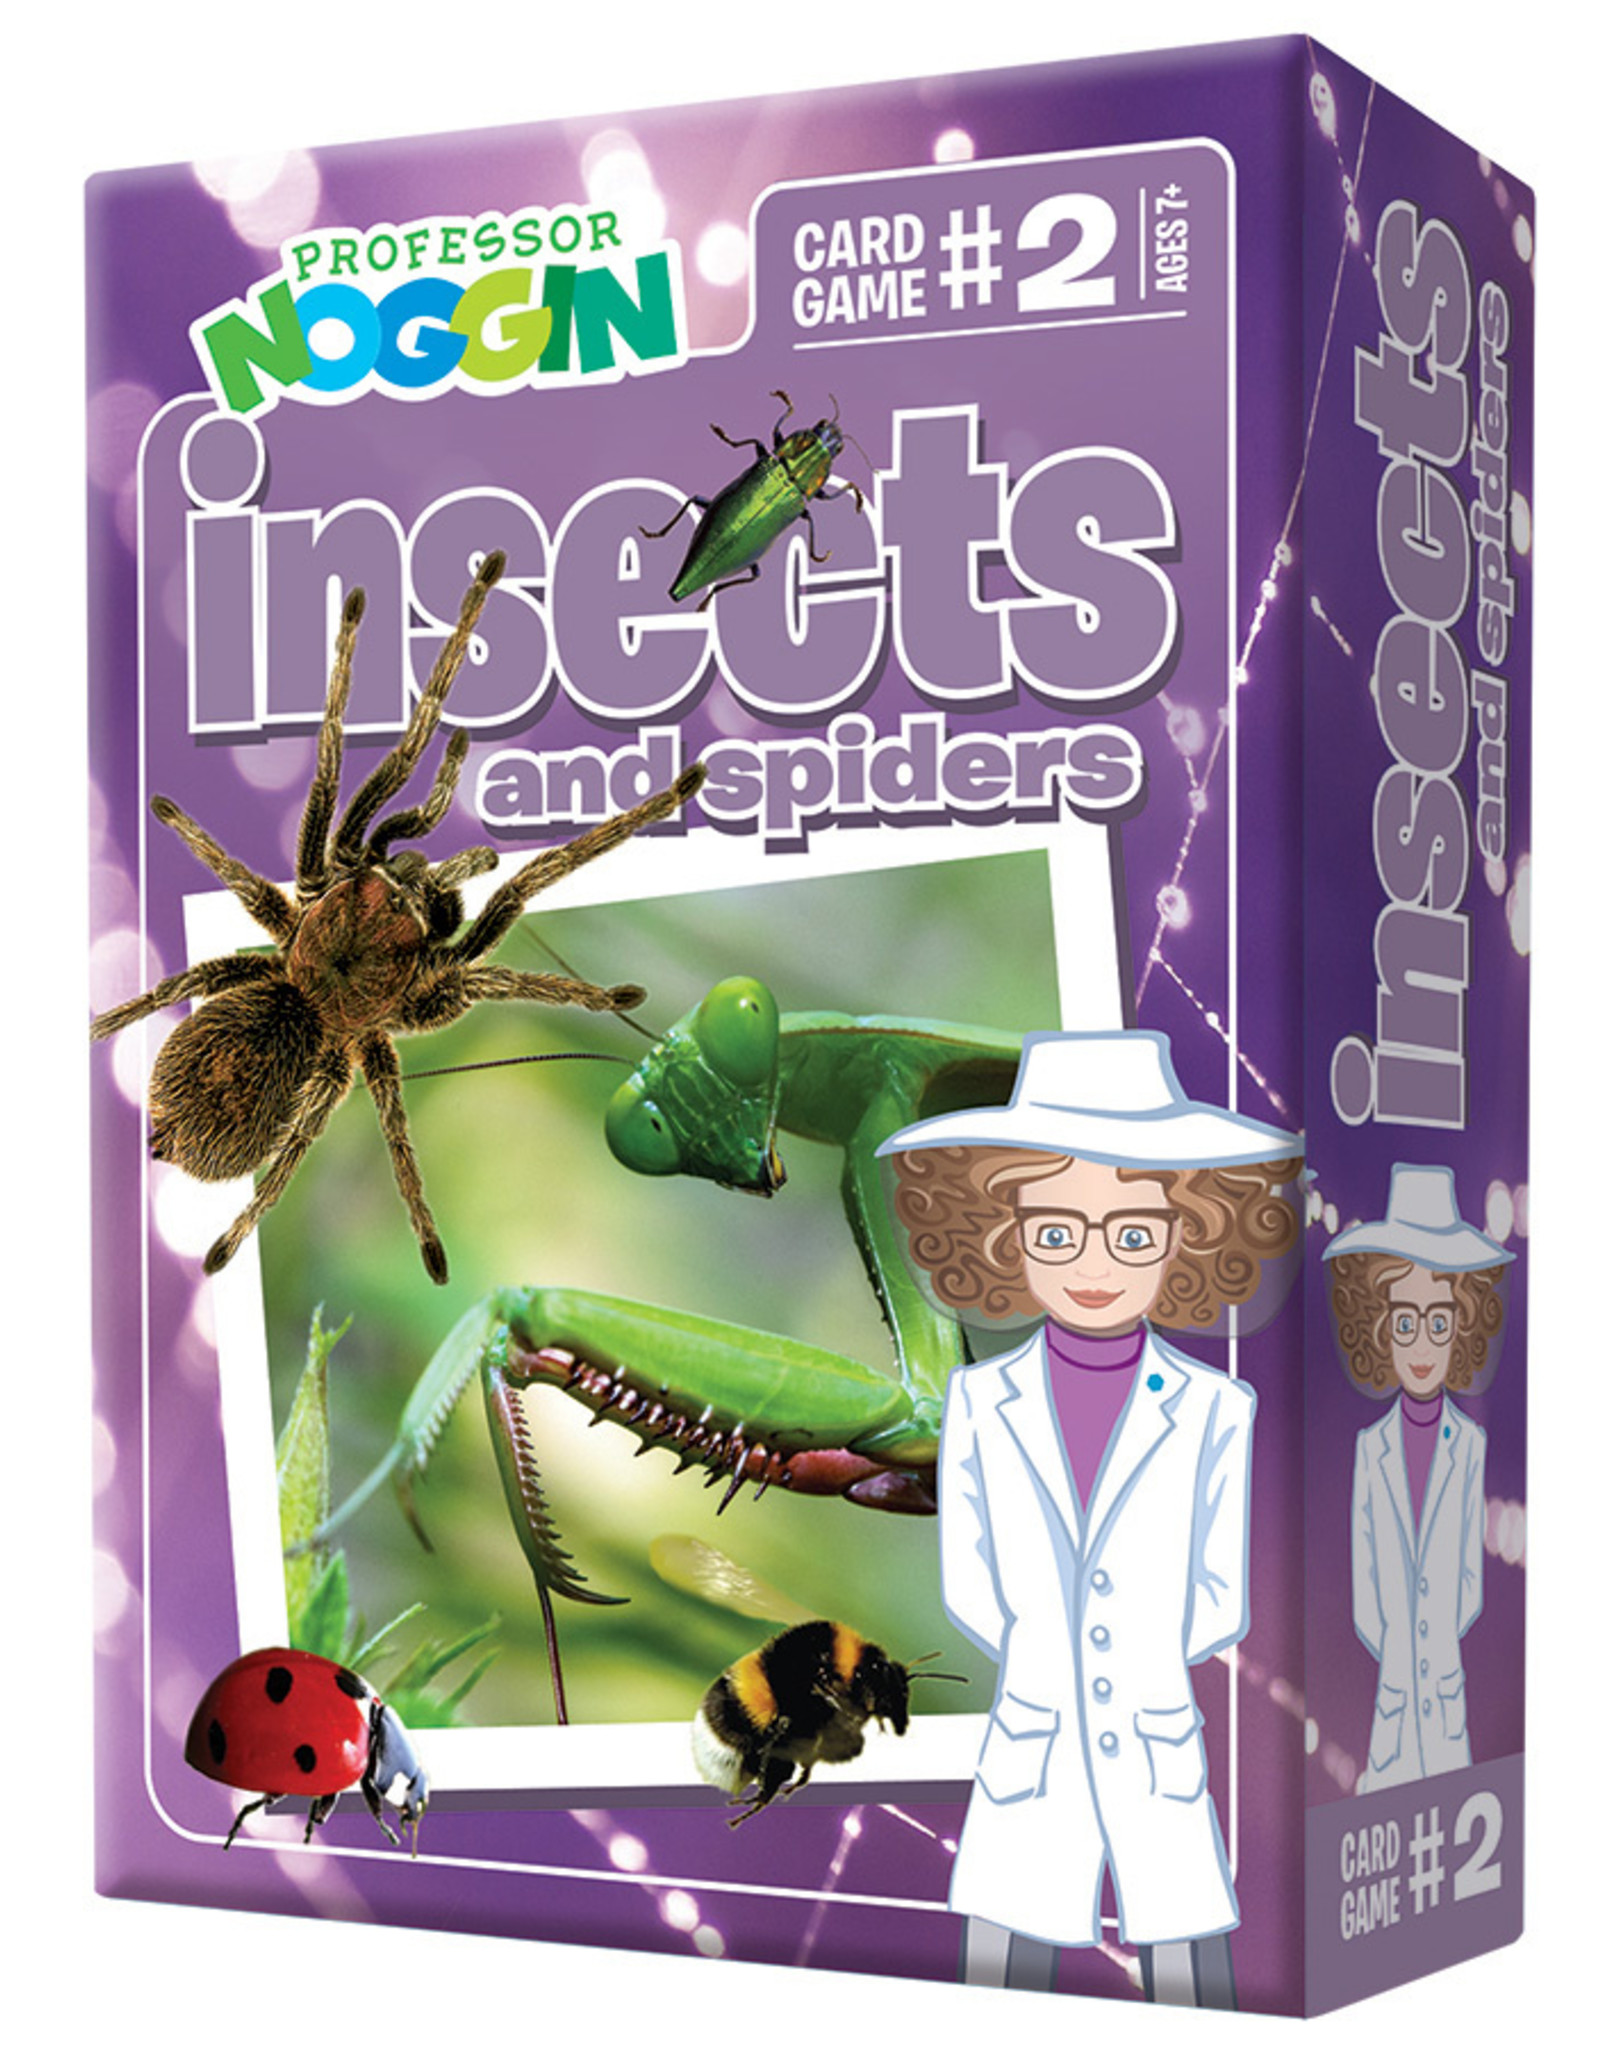 Professor Noggin Game, Cards, Insects and Spiders, Prof Noggins